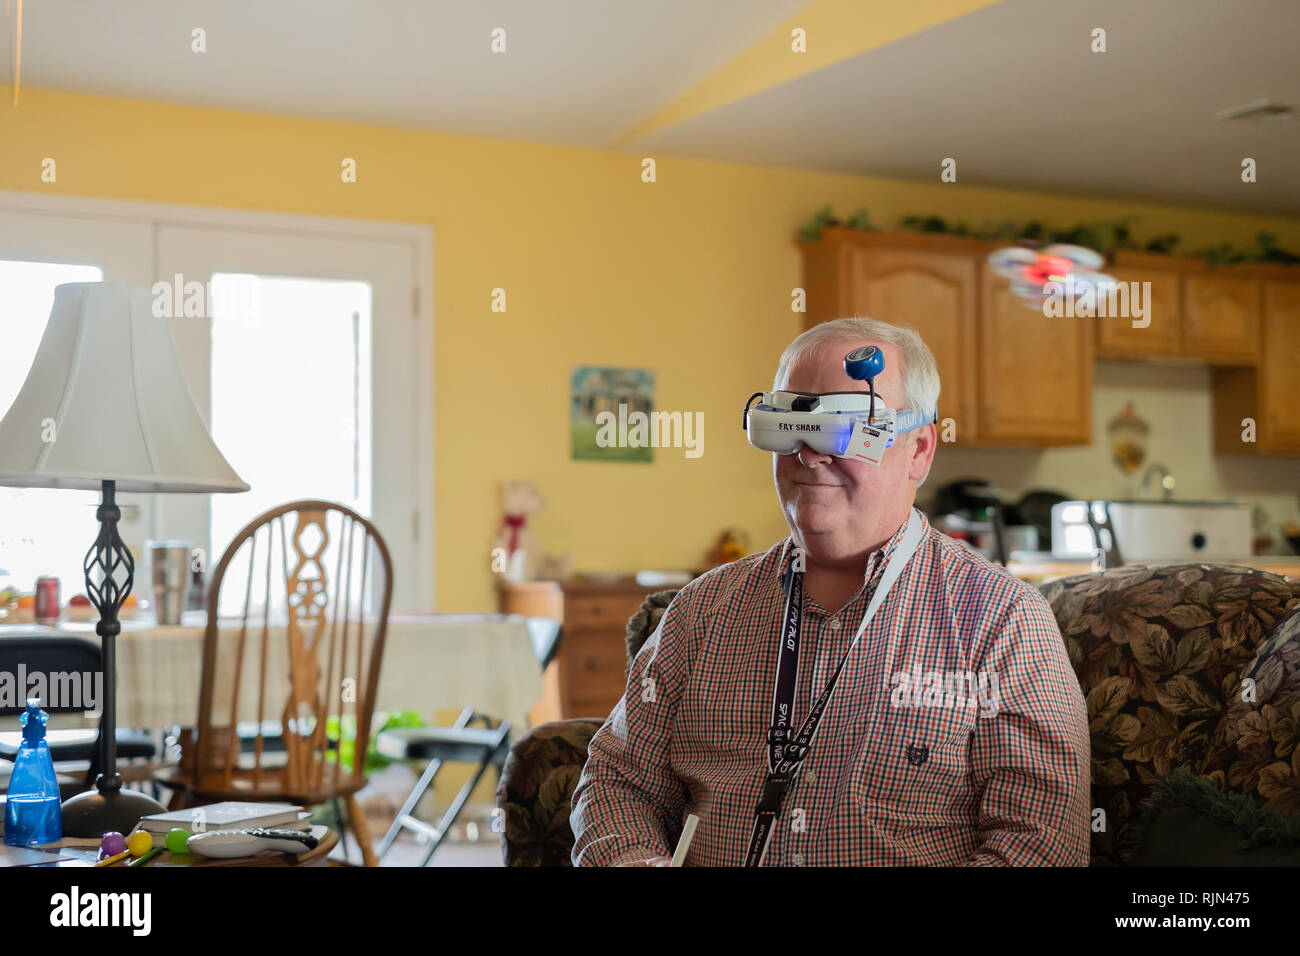 Fat Shark drone goggles worn by a 55 year old Caucasian man to visualize his small EACHINE E10 mini UFO quadcopter drone flying inside a home. USA. - Stock Image